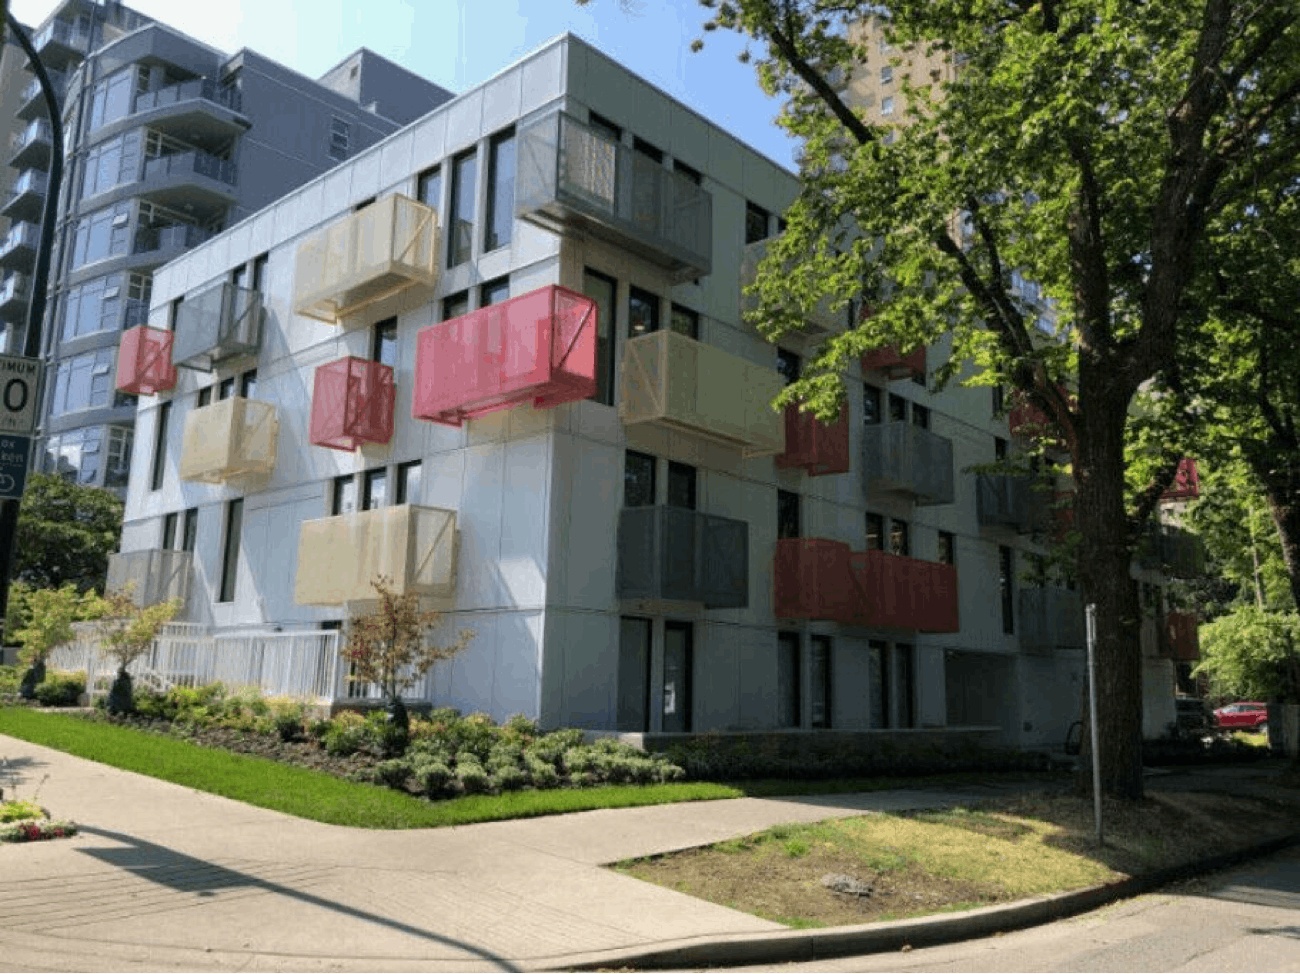 Example of simplified building design (simple architecture) on a 4-storey apartment building